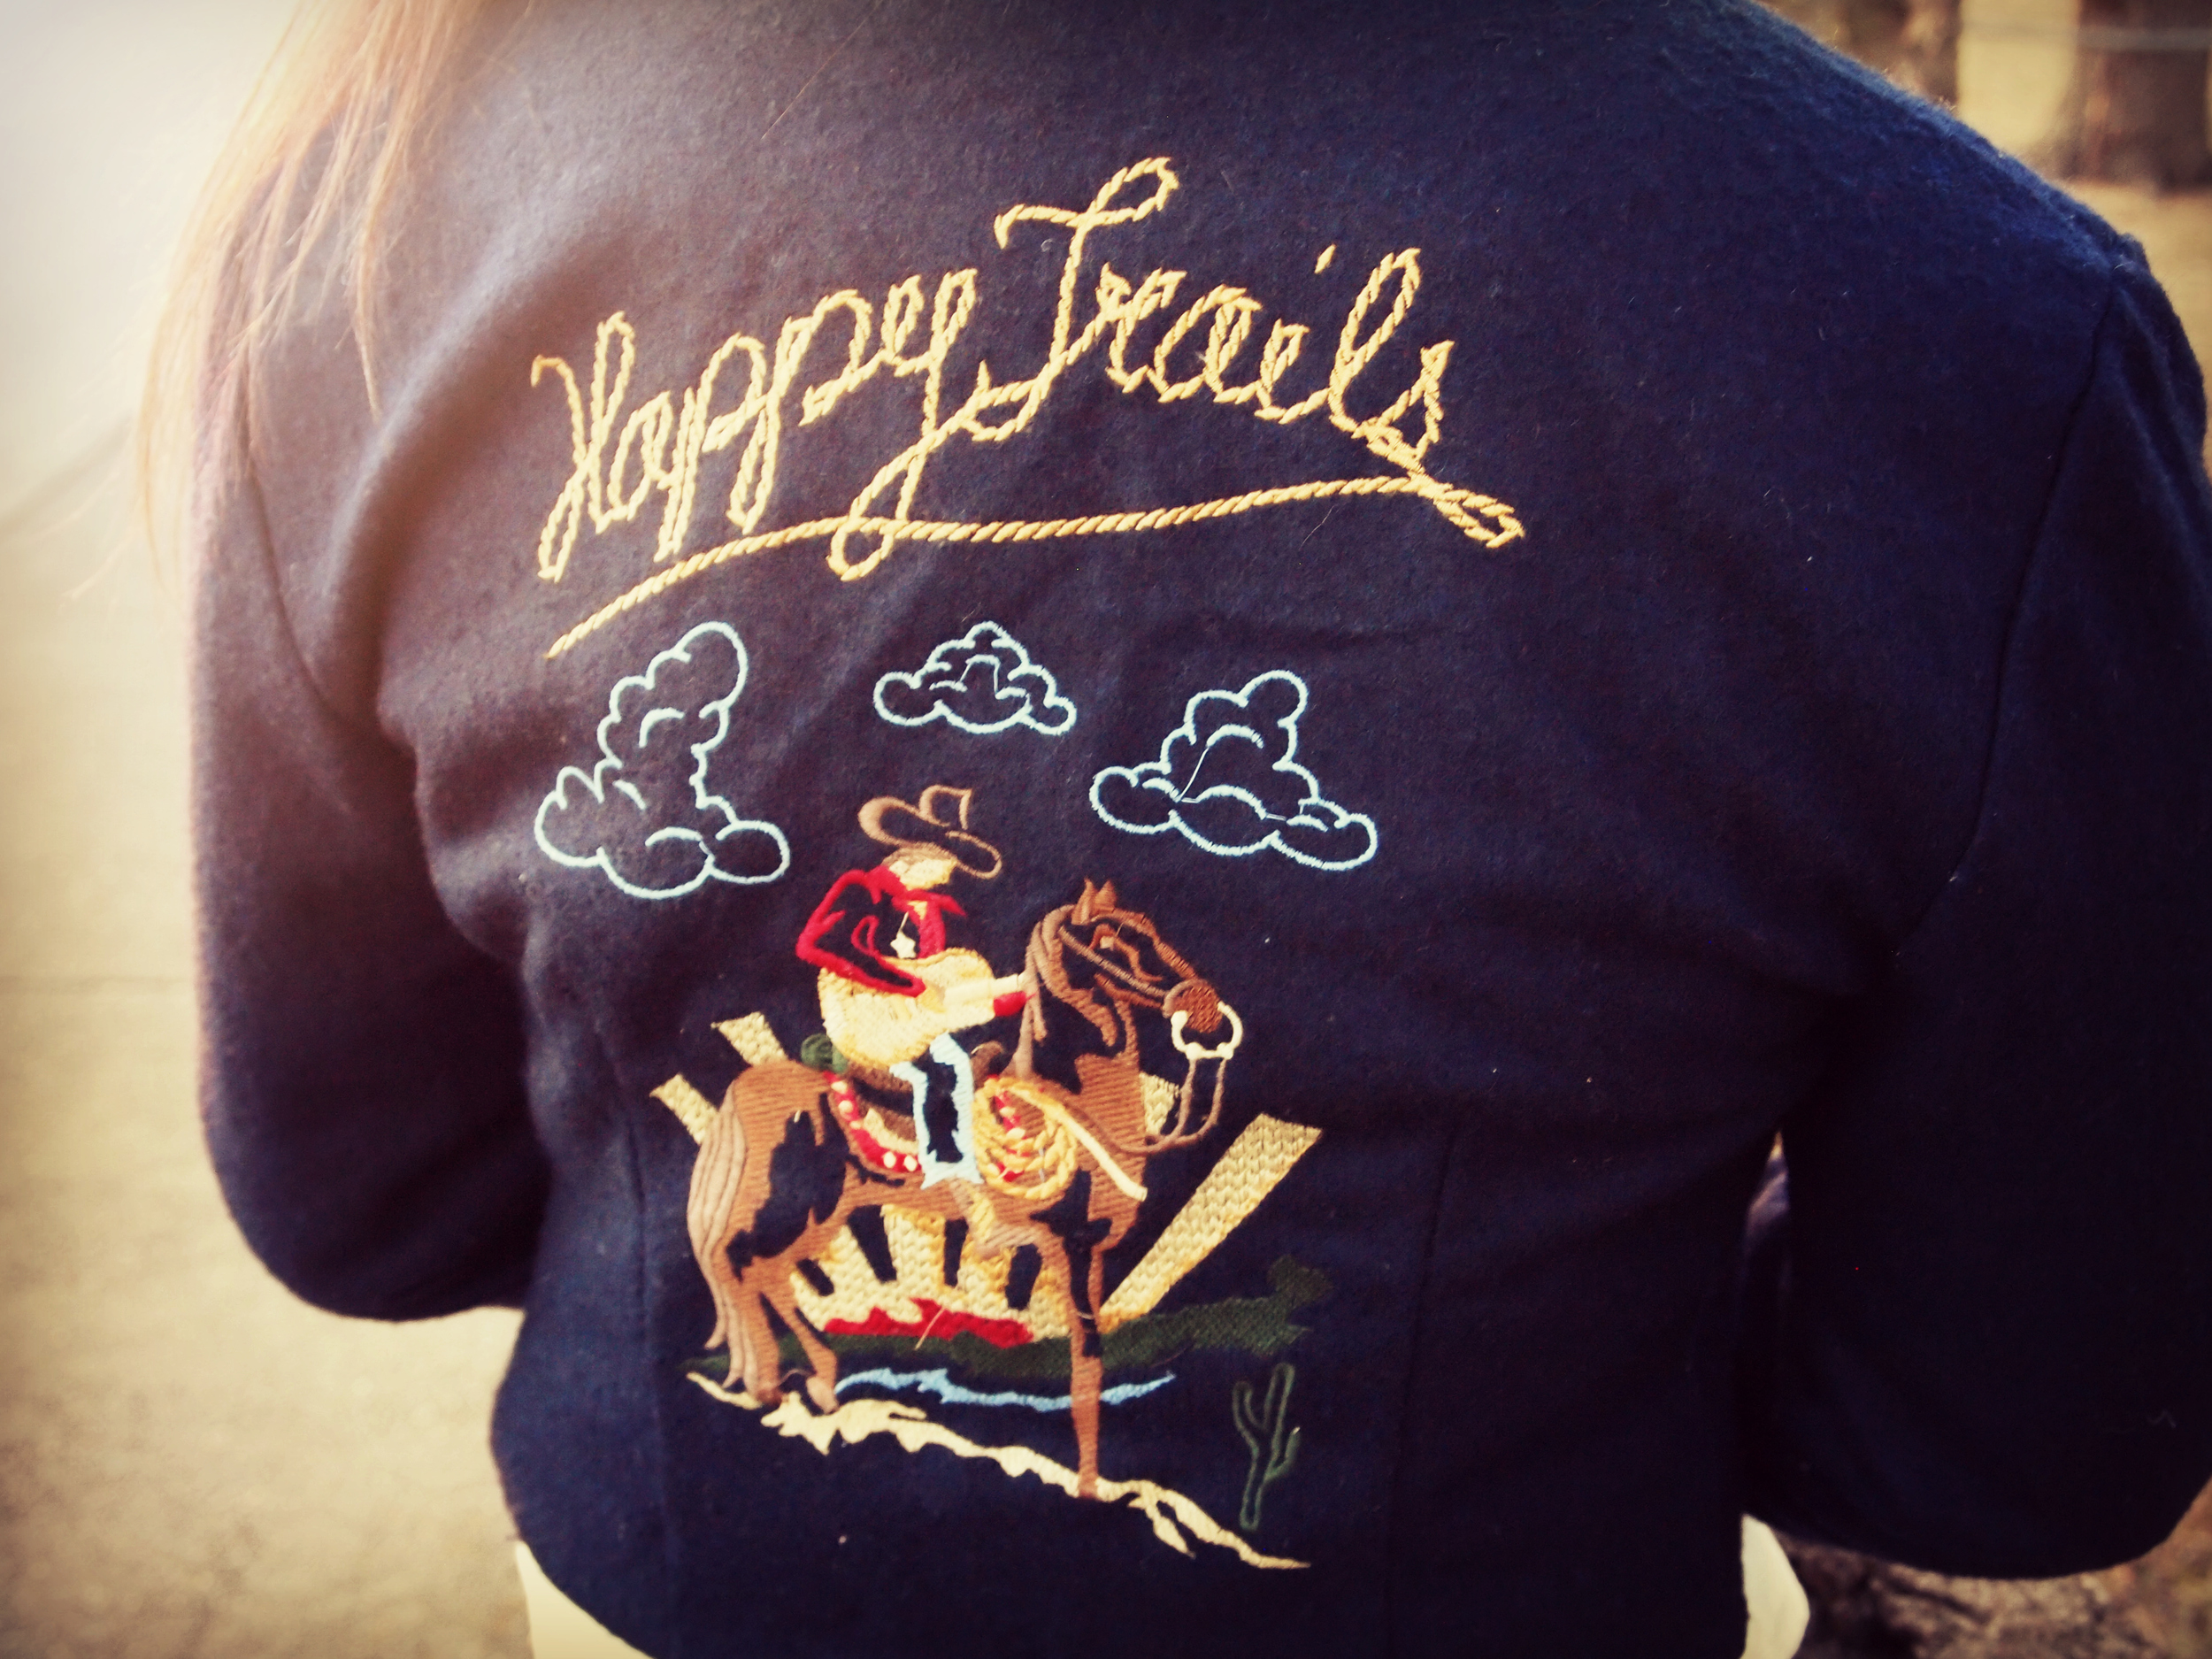 Happy Trails Jacket: Savant Vintage